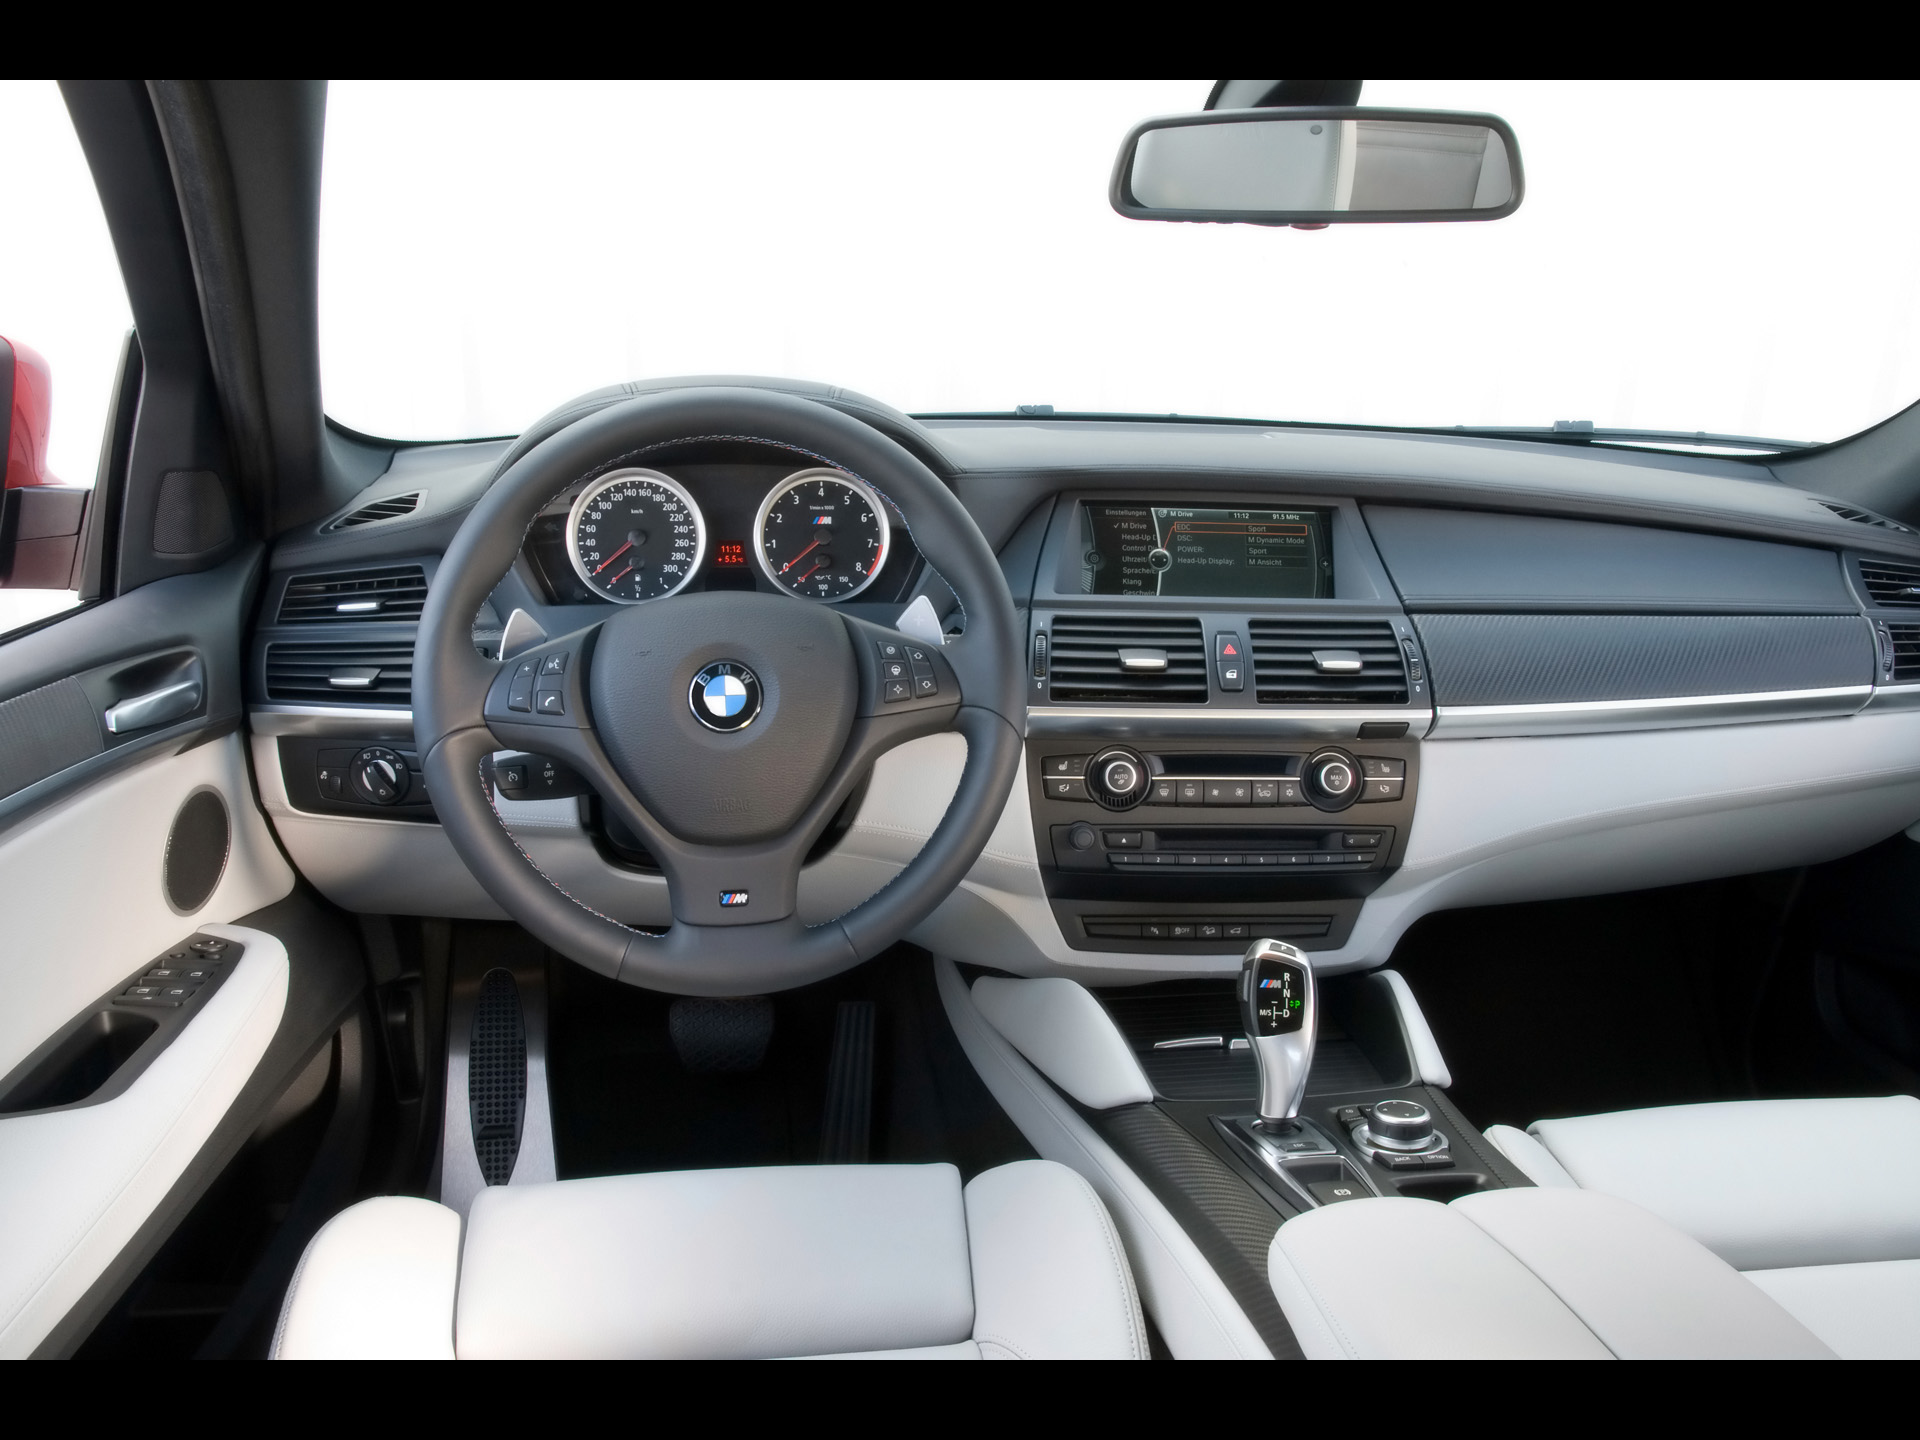 2009 BMW X6 M - Dashboard - 1920x1440 - Wallpaper. Image Credits - BMW Group